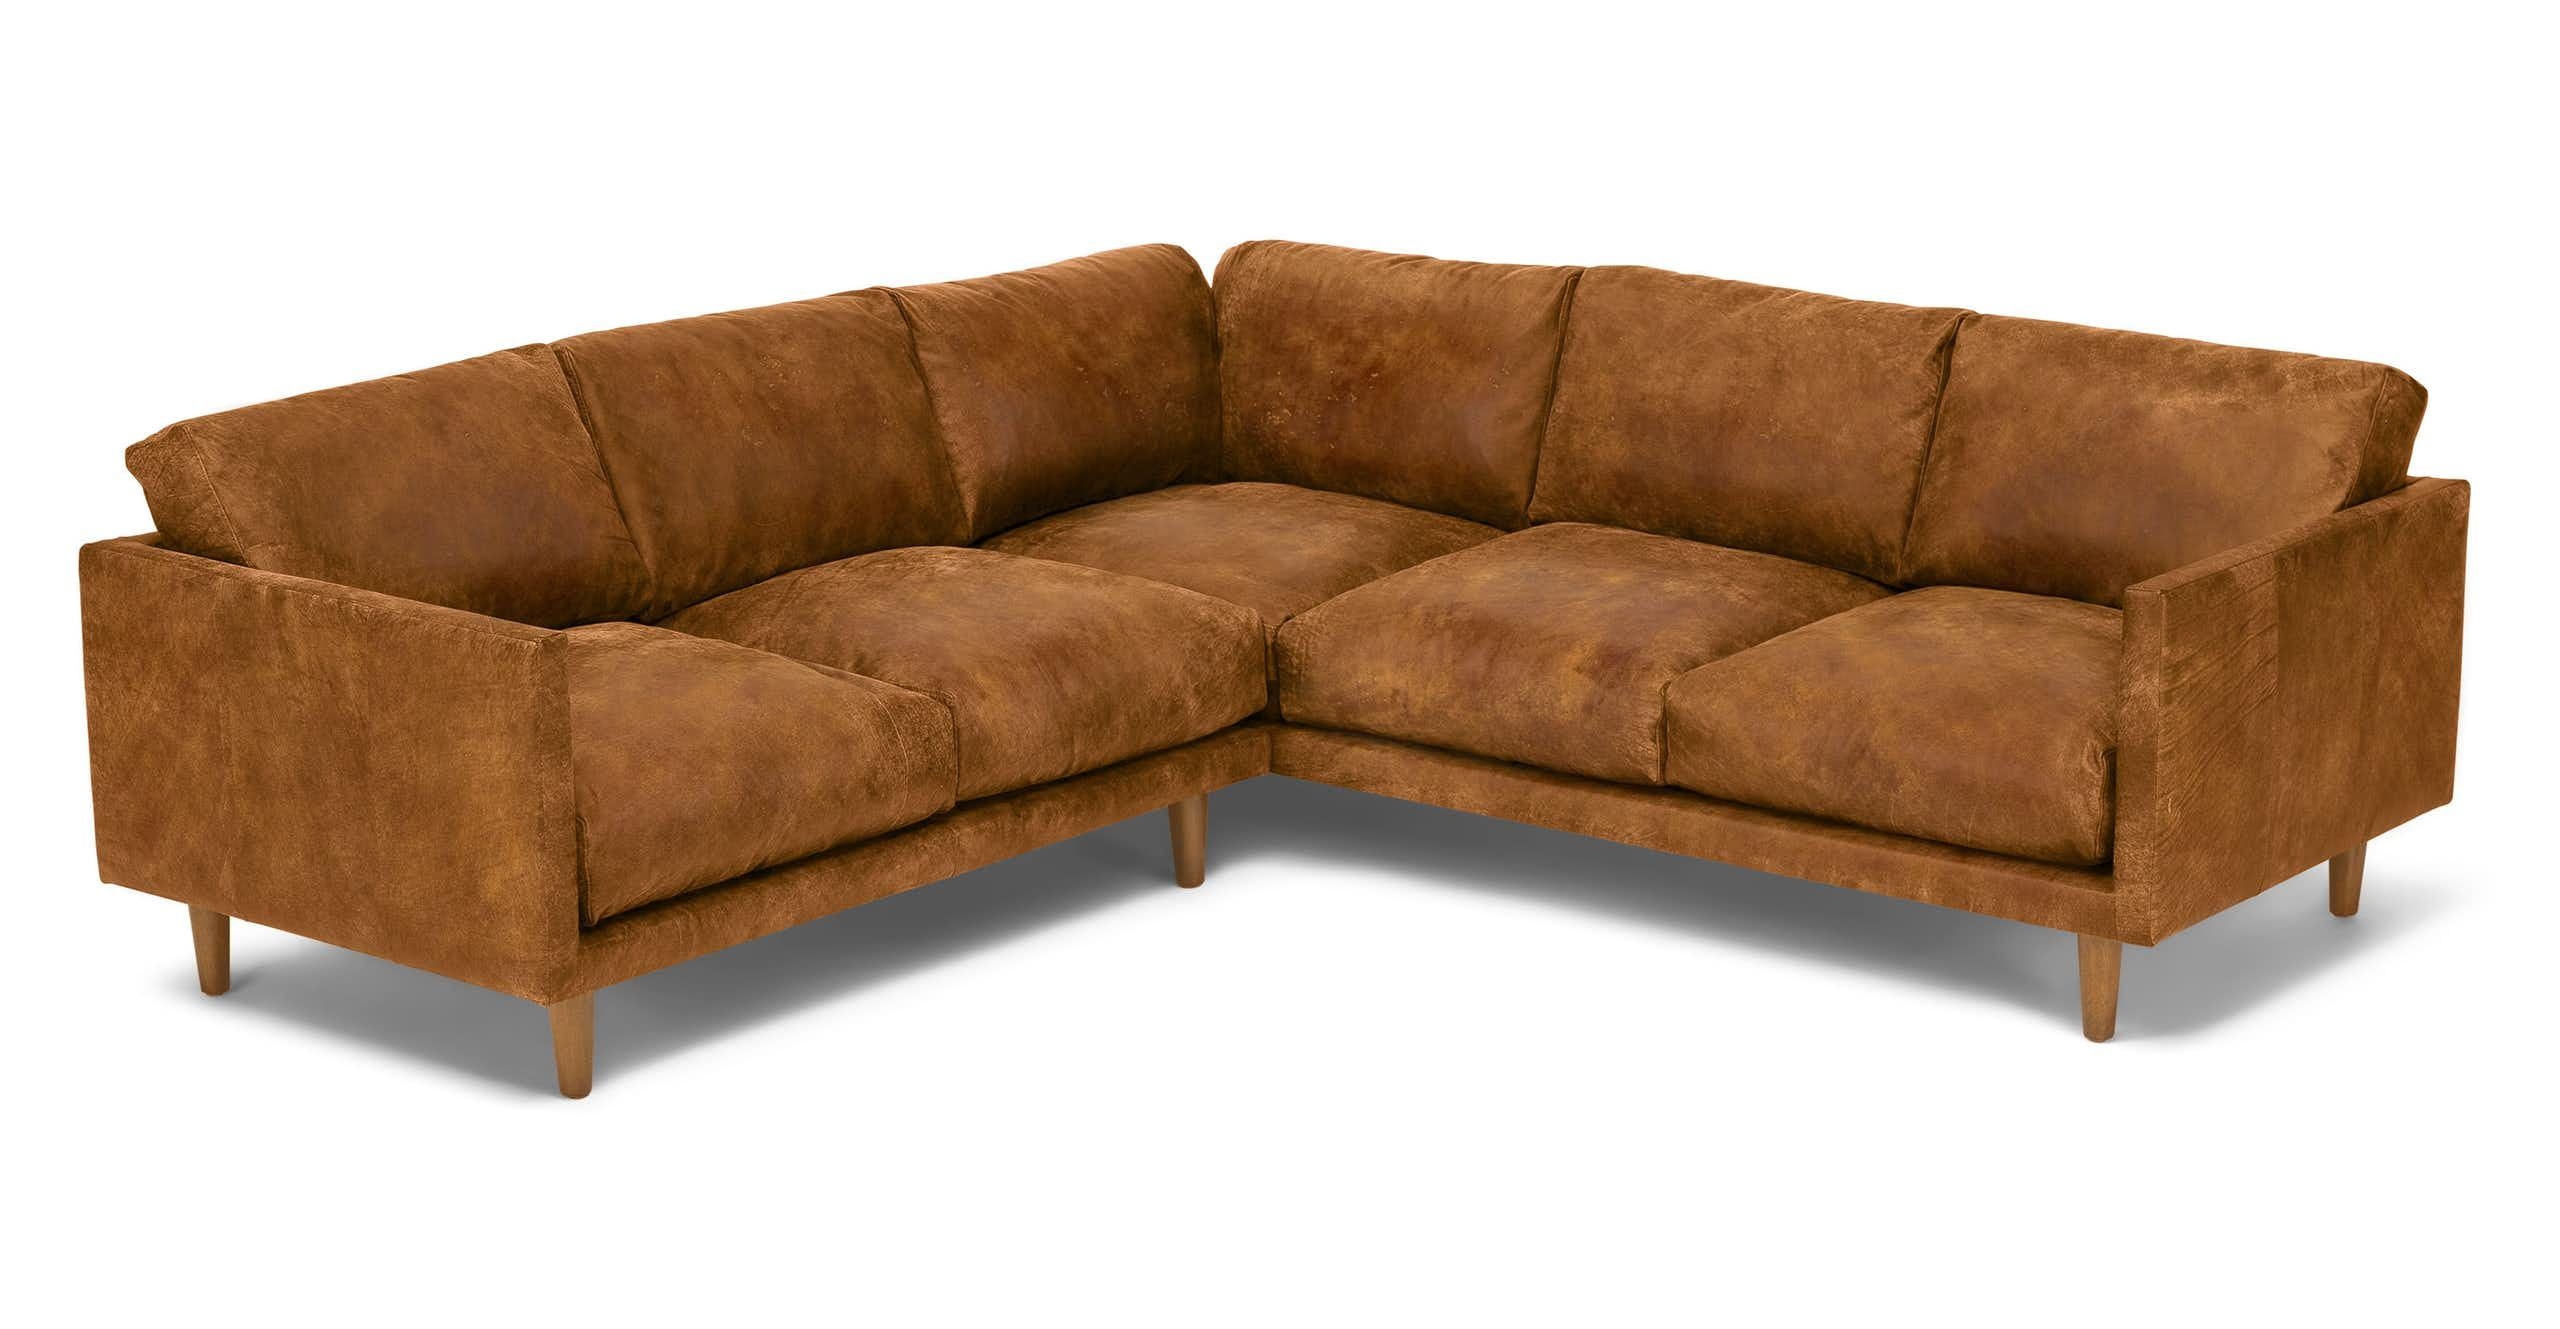 This is our softest sofa handcrafted with down filled cushions and a chic distressed leather